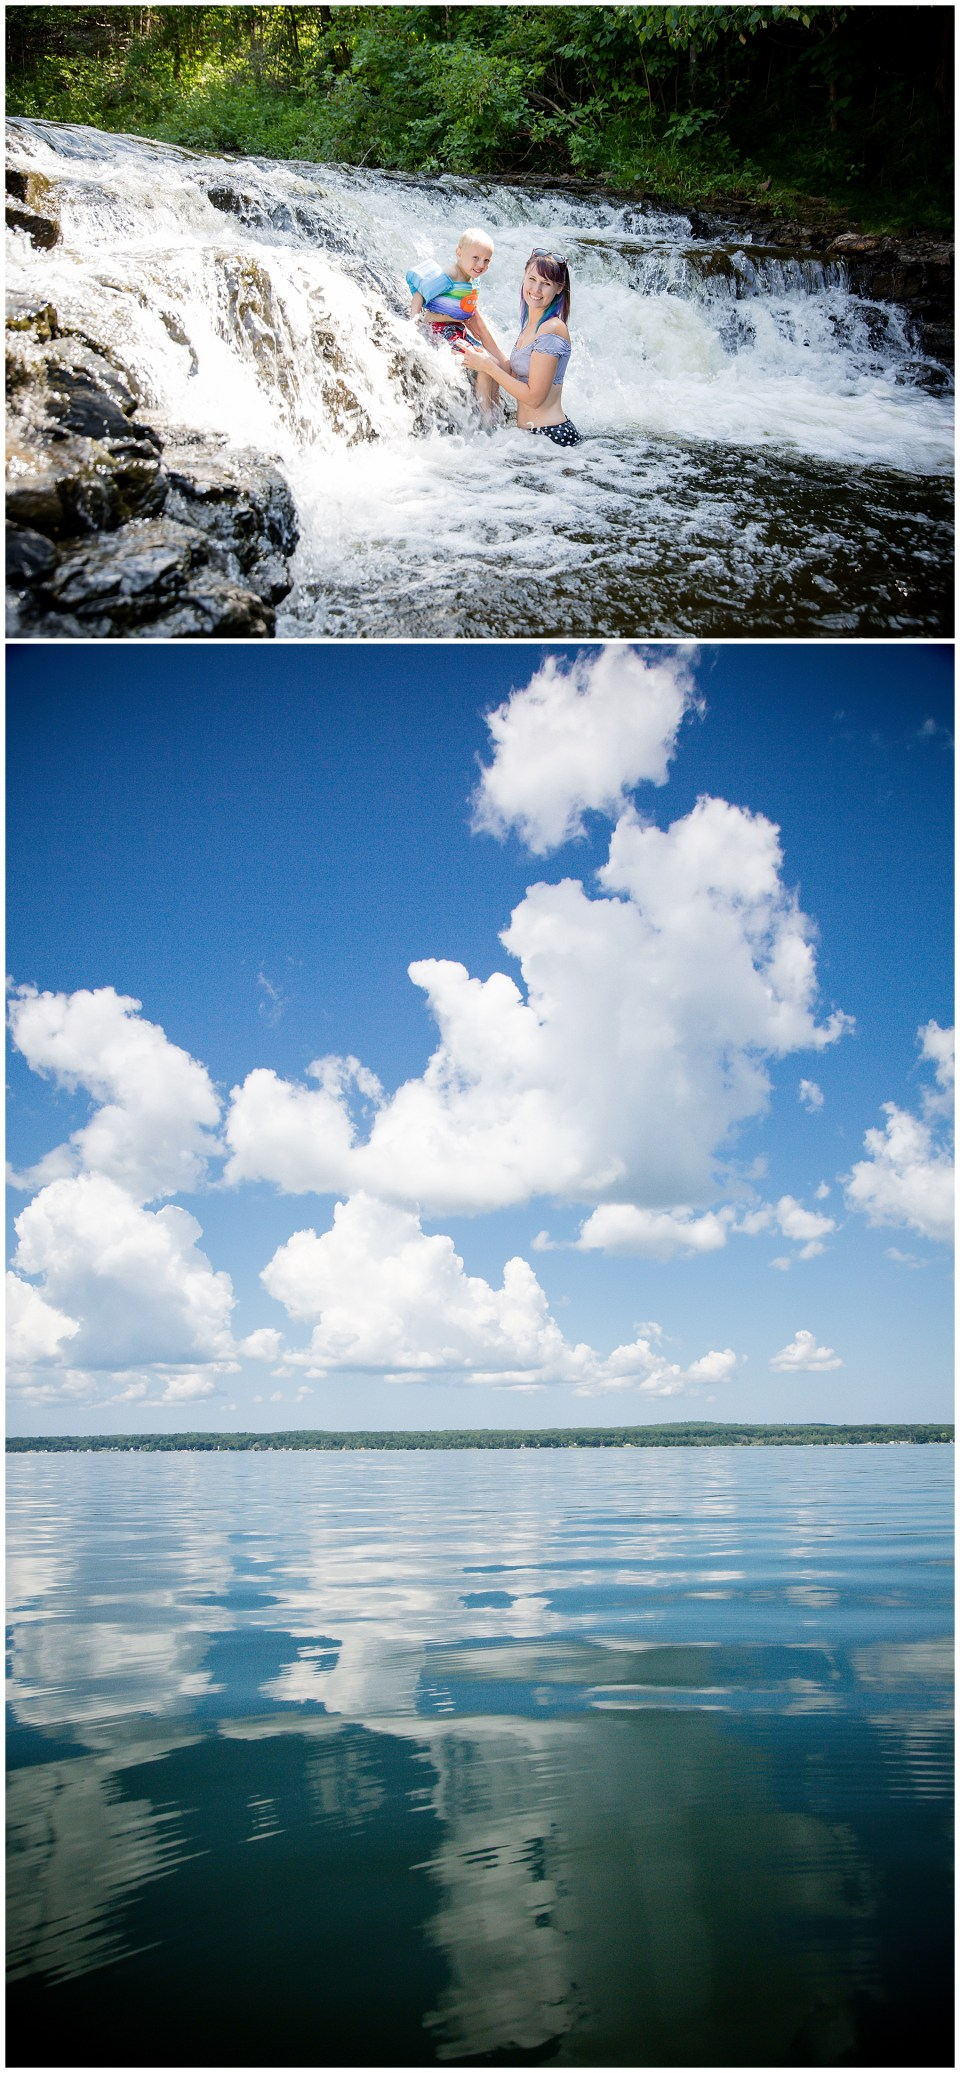 Two photos stacked, Top: Christy and her son in a waterfall. Bottom: Calm lake waters with bright blue skies and fluffy white clouds reflecting in the water.